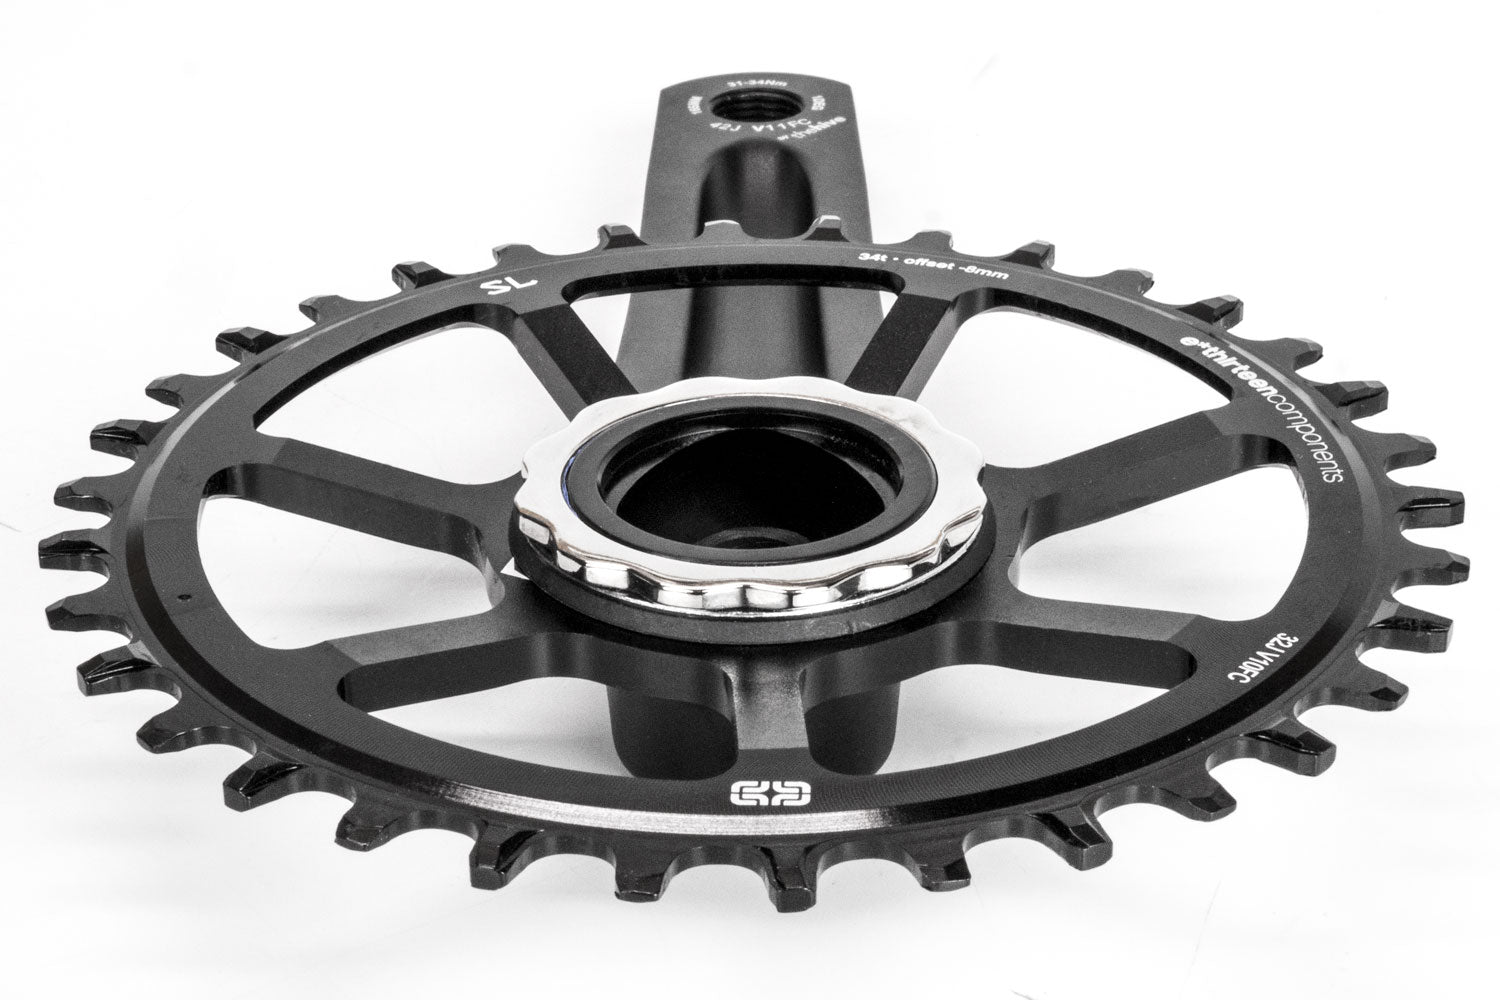 Trs Plus Cranks The Hive Crank E13